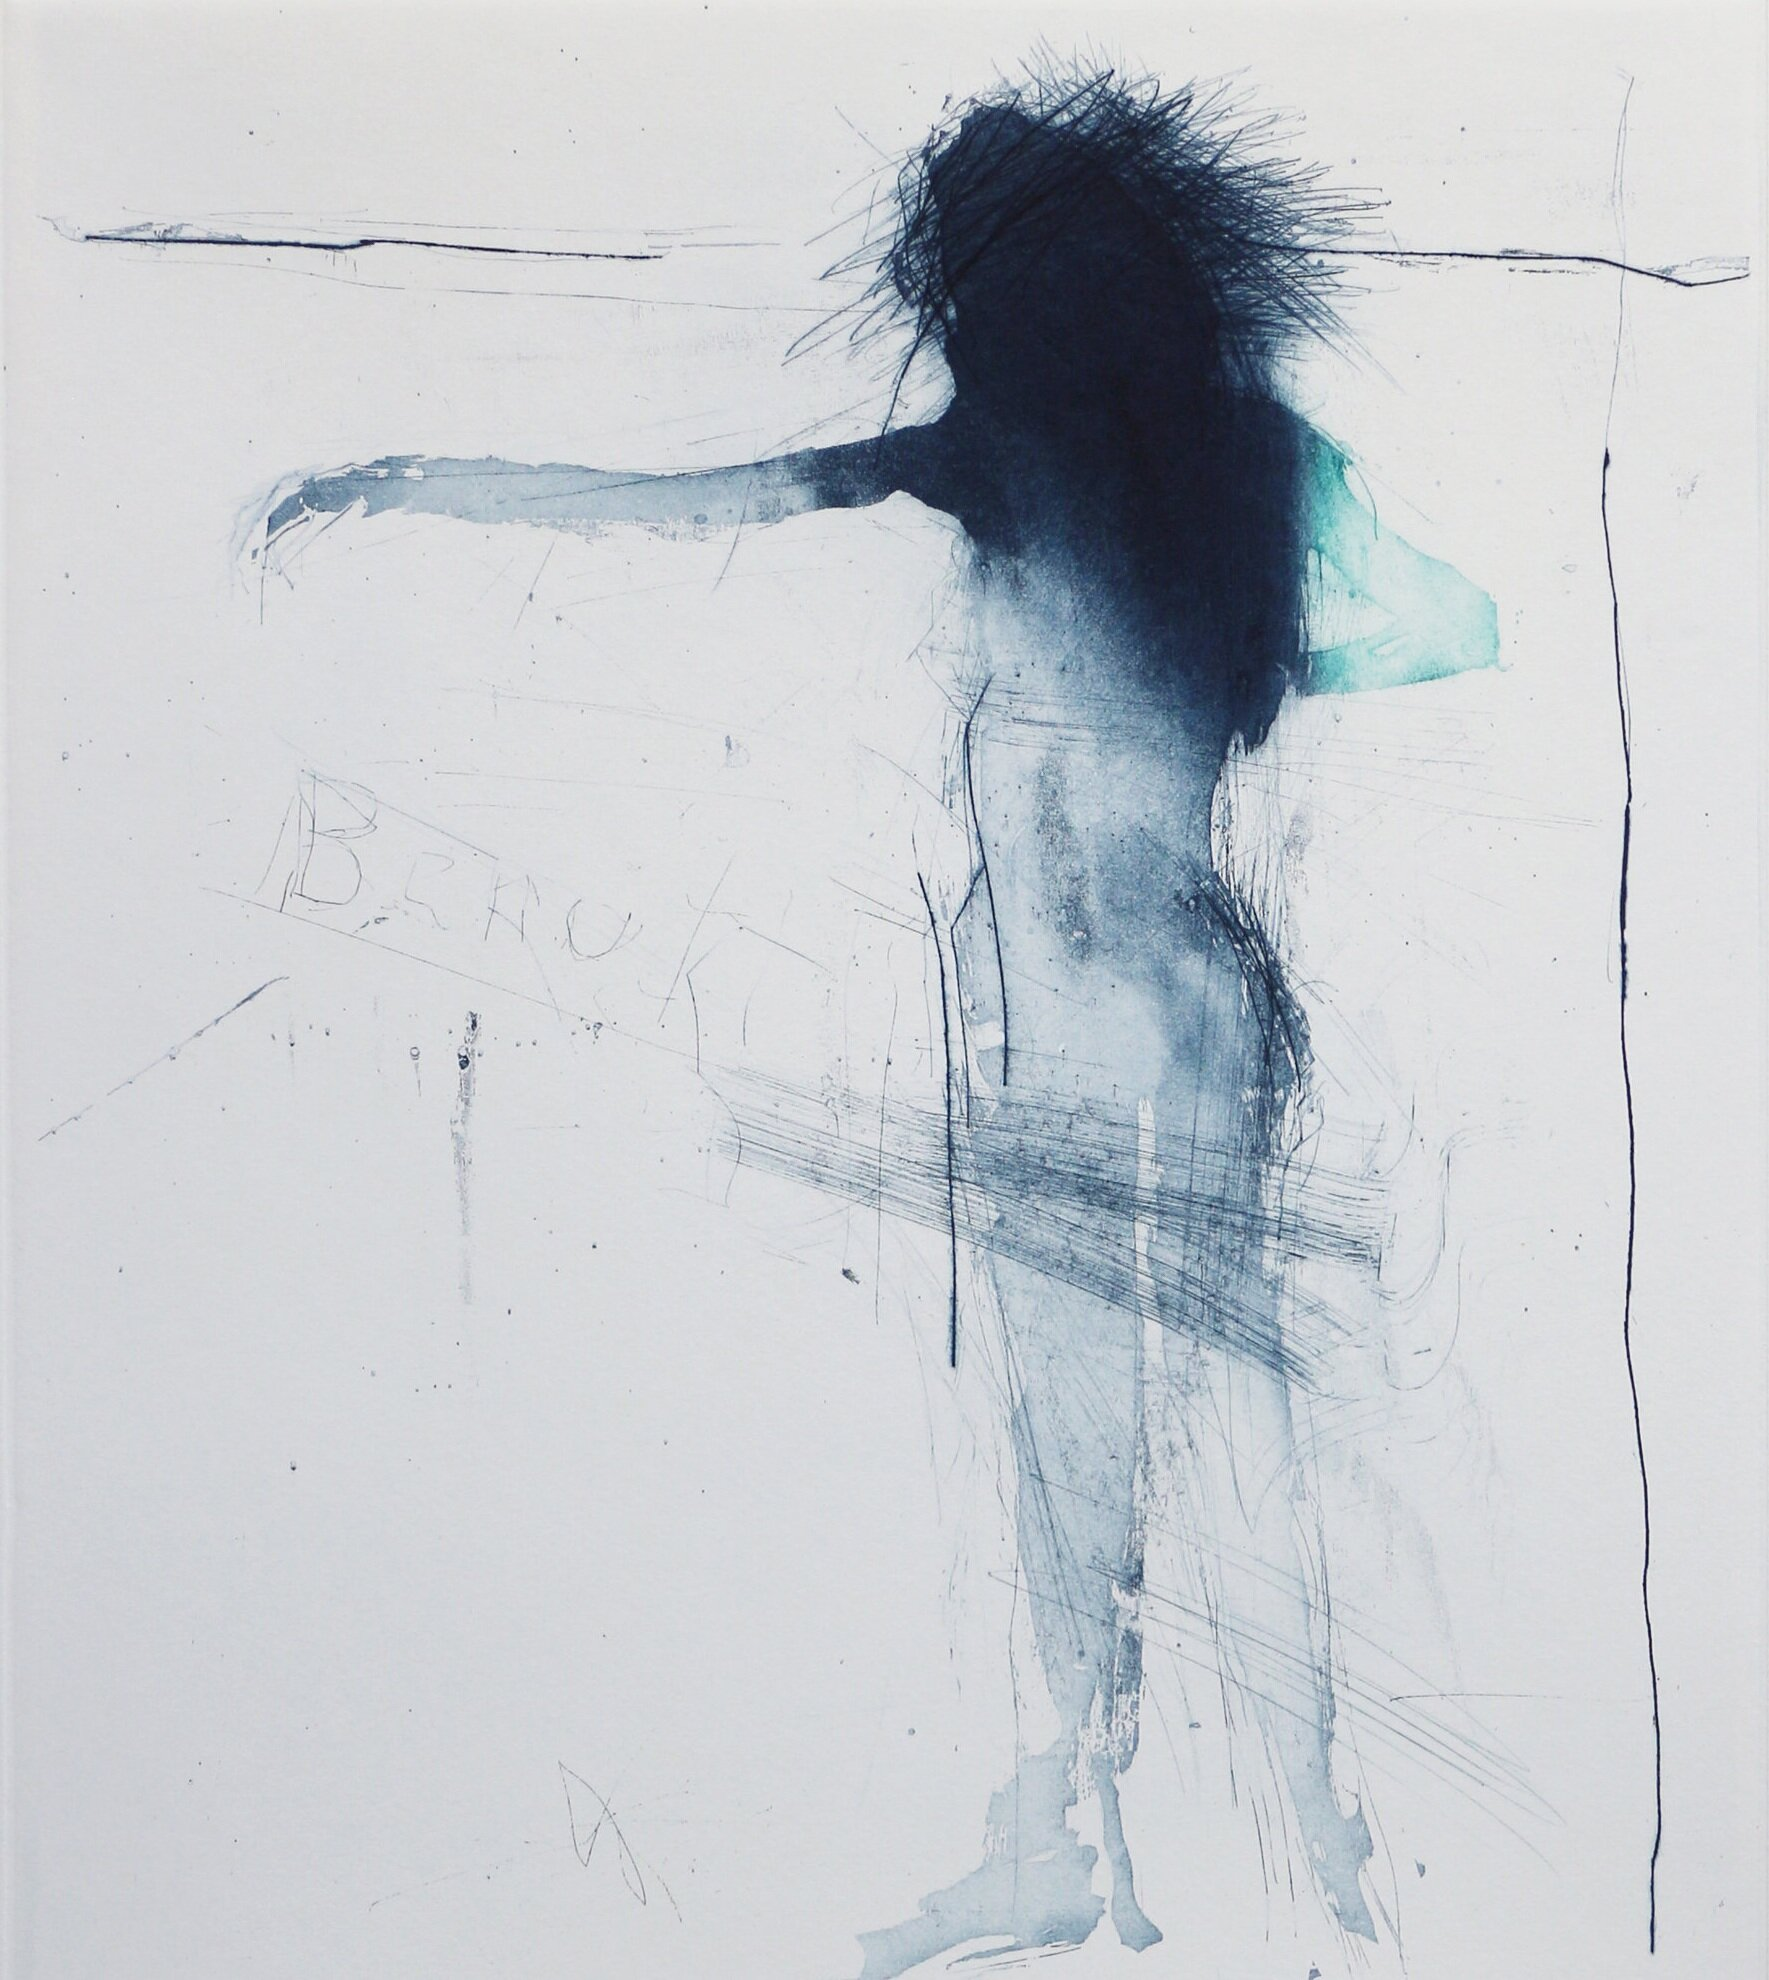 Artist: Henry Jabbour  Title: Dancer IV  Size: 38 x 33 cm  Medium: Sugar lift with aquatint and dry point  Price: £560